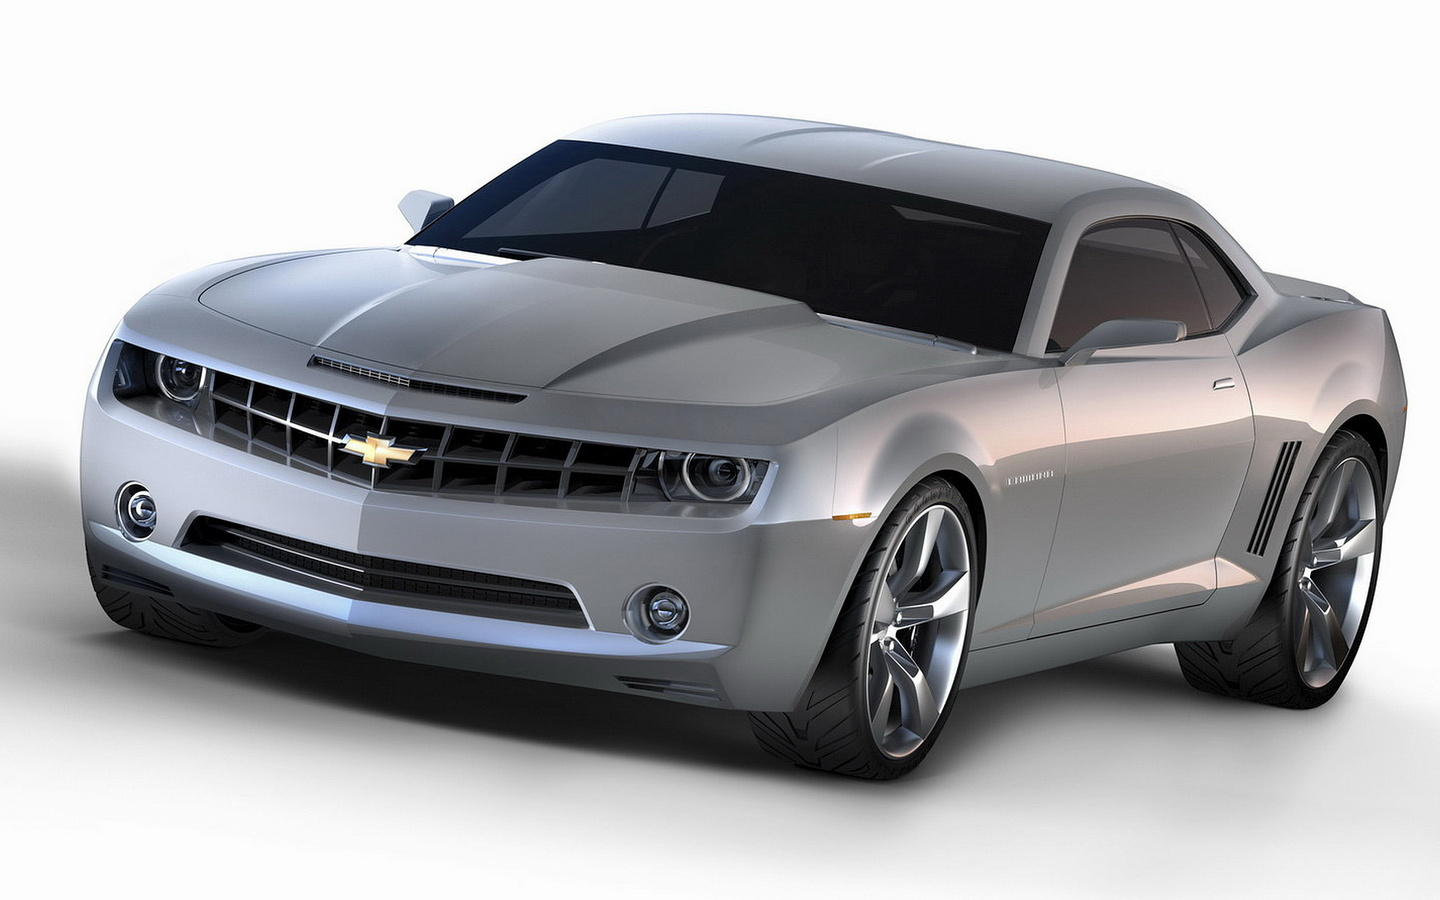 History Of Cars Chevrolet Camaro History Of Cars